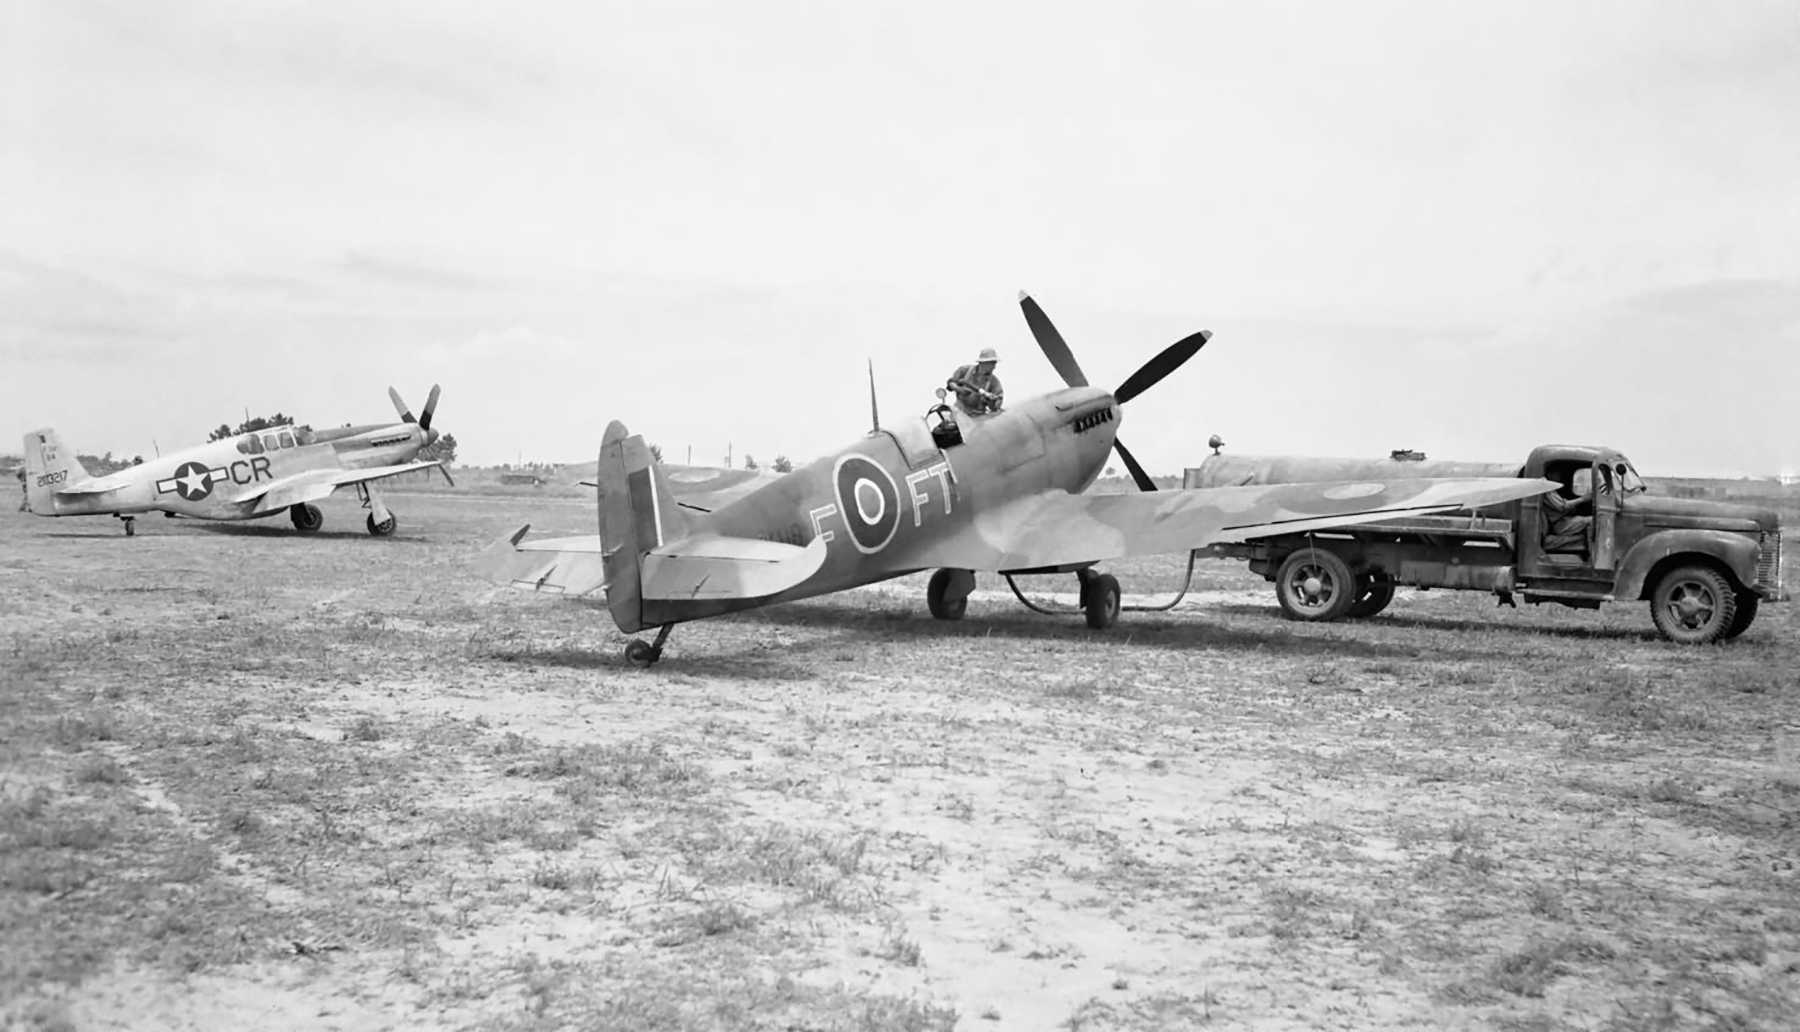 Spitfire MkIX RAF 43Sqn FTF MK118 being refueled in Italy web 01